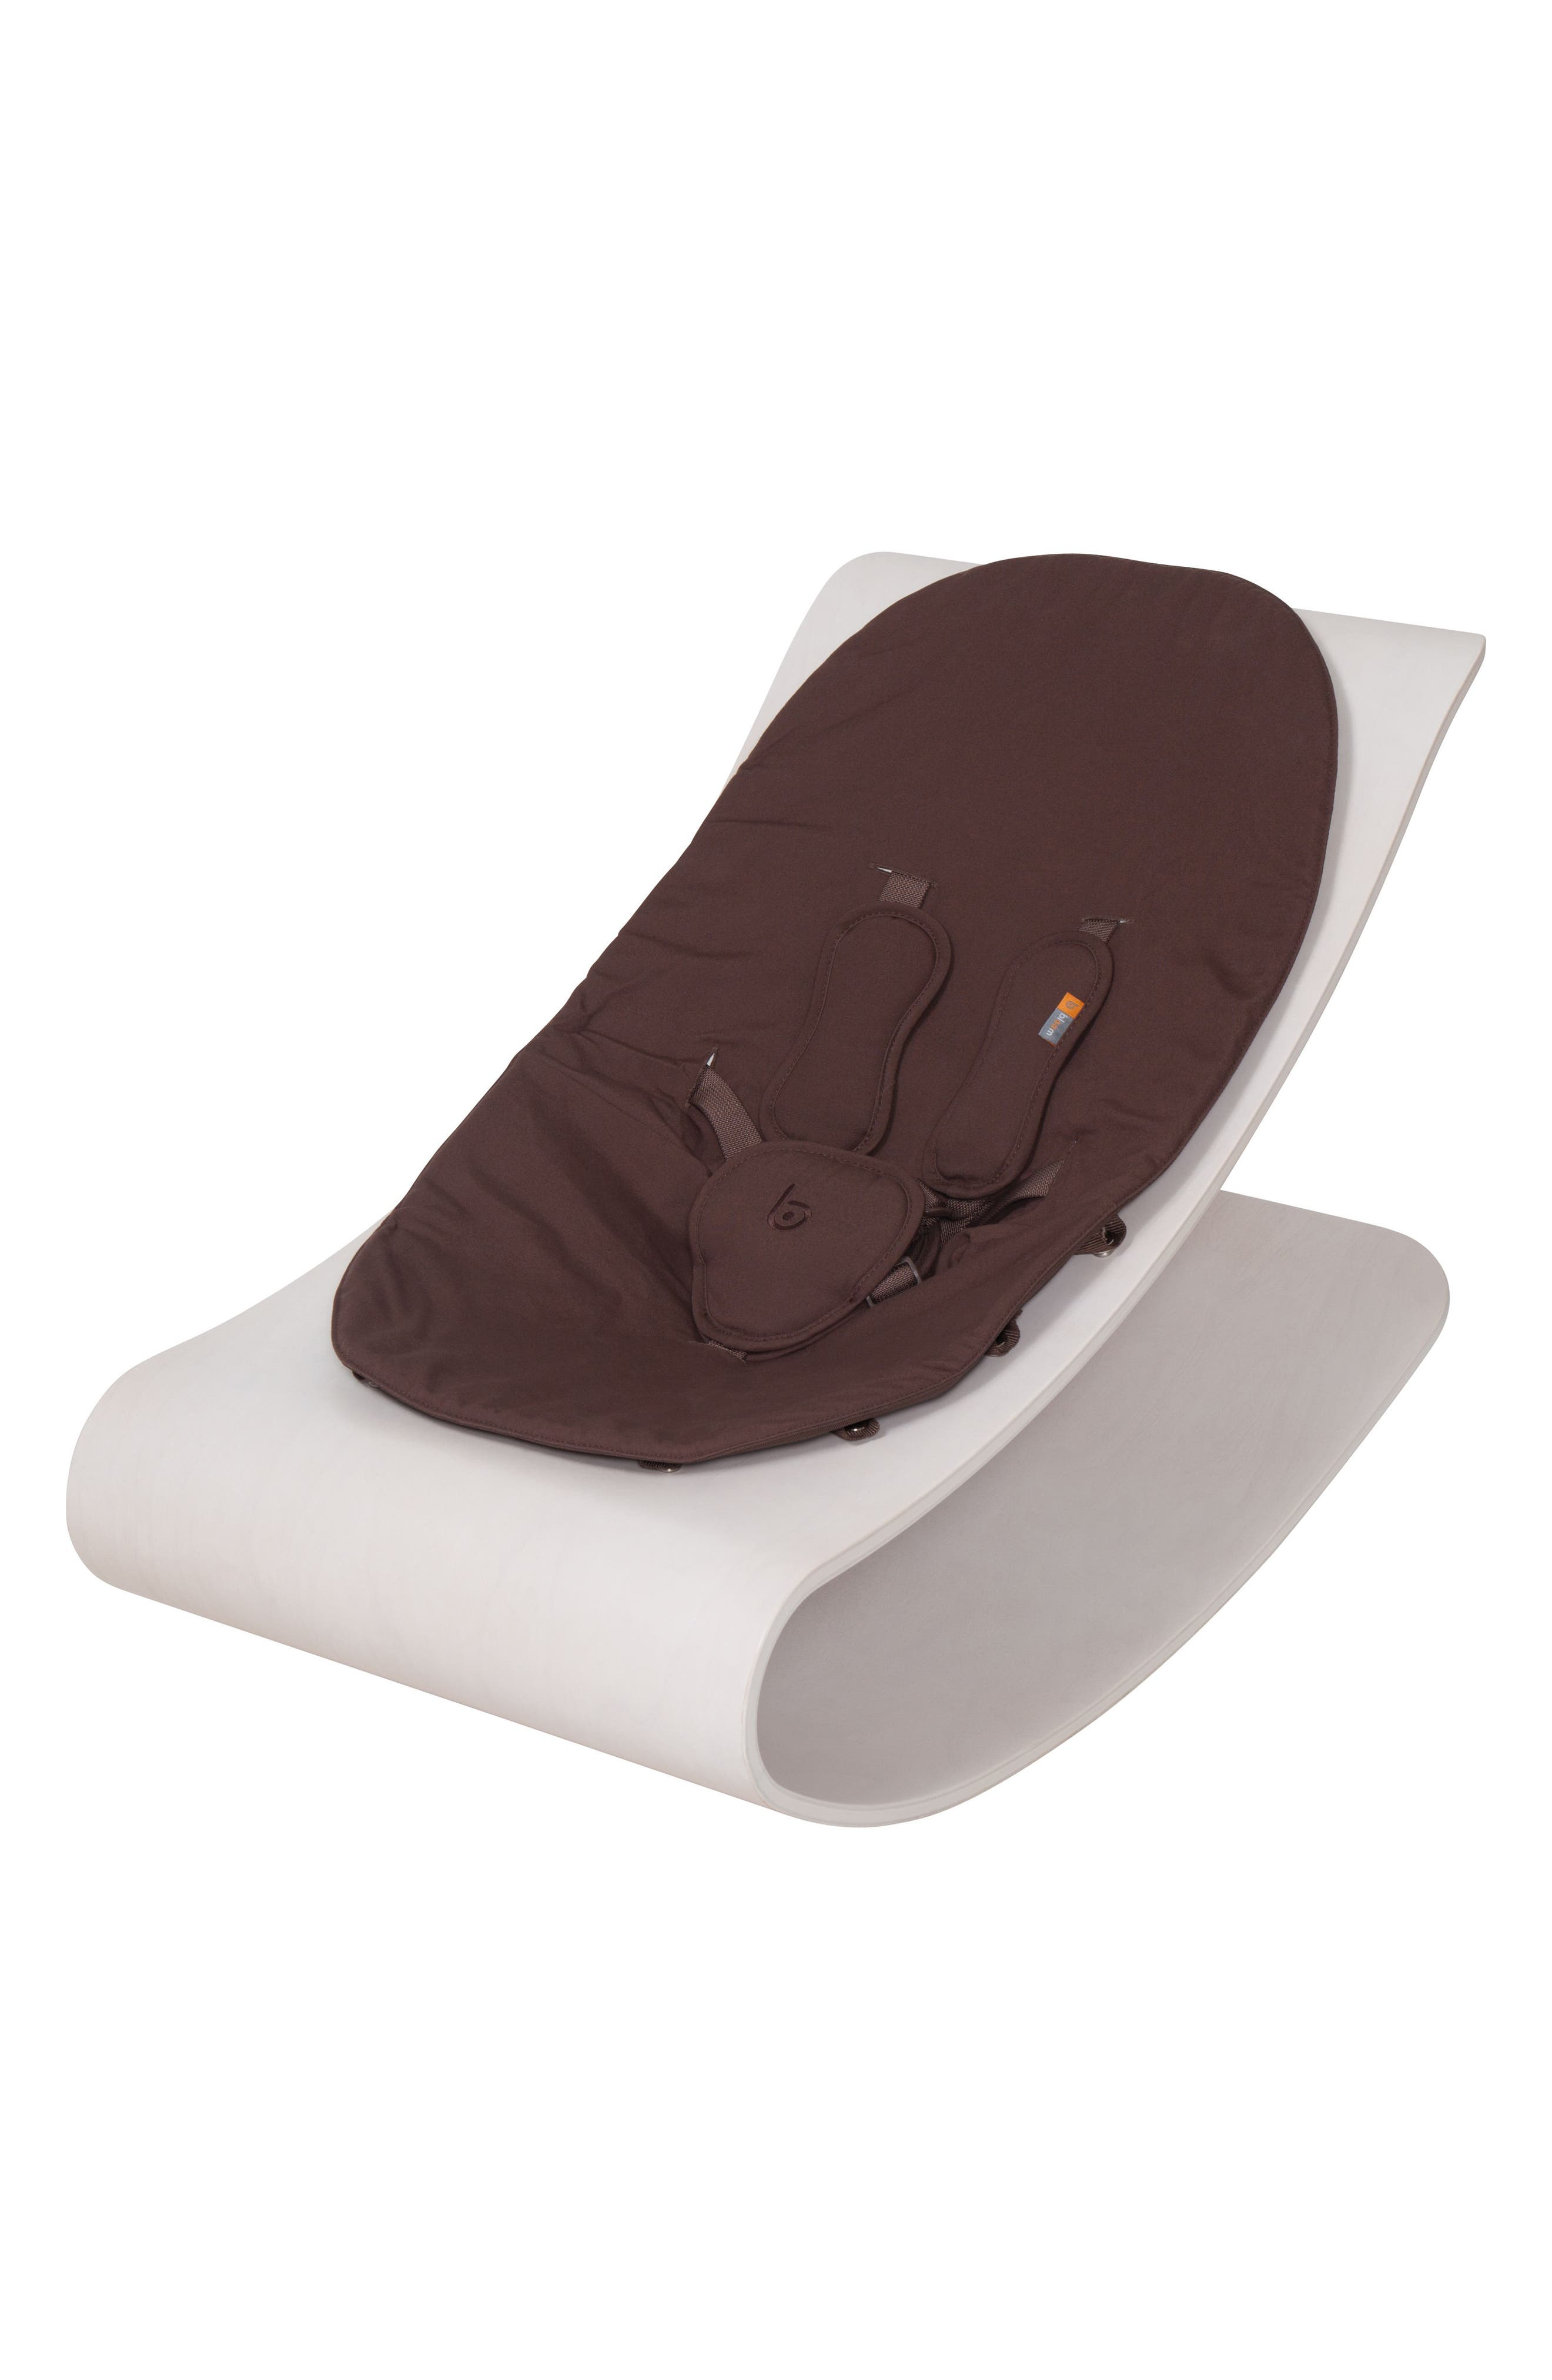 Coco Stylewood Beach House Infant Lounger,                             Main thumbnail 1, color,                             White/ Brown